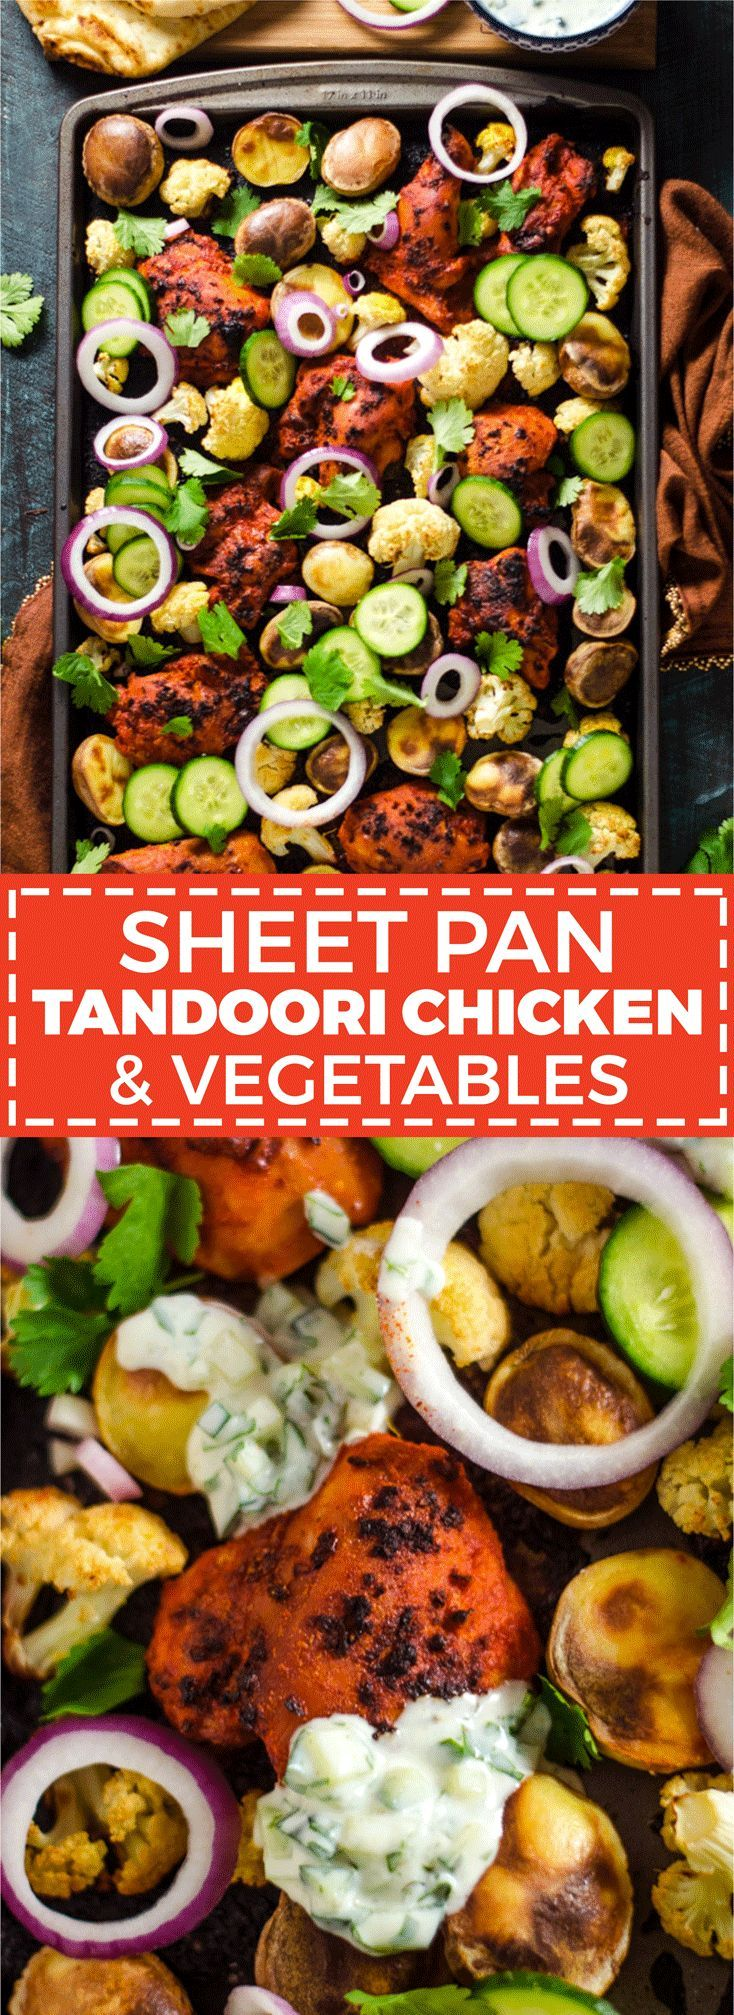 Sheet Pan Tandoori Chicken and Vegetables. This Indian-inspired recipe creates a full, delicious dinner with very little effort. | http://hostthetoast.com